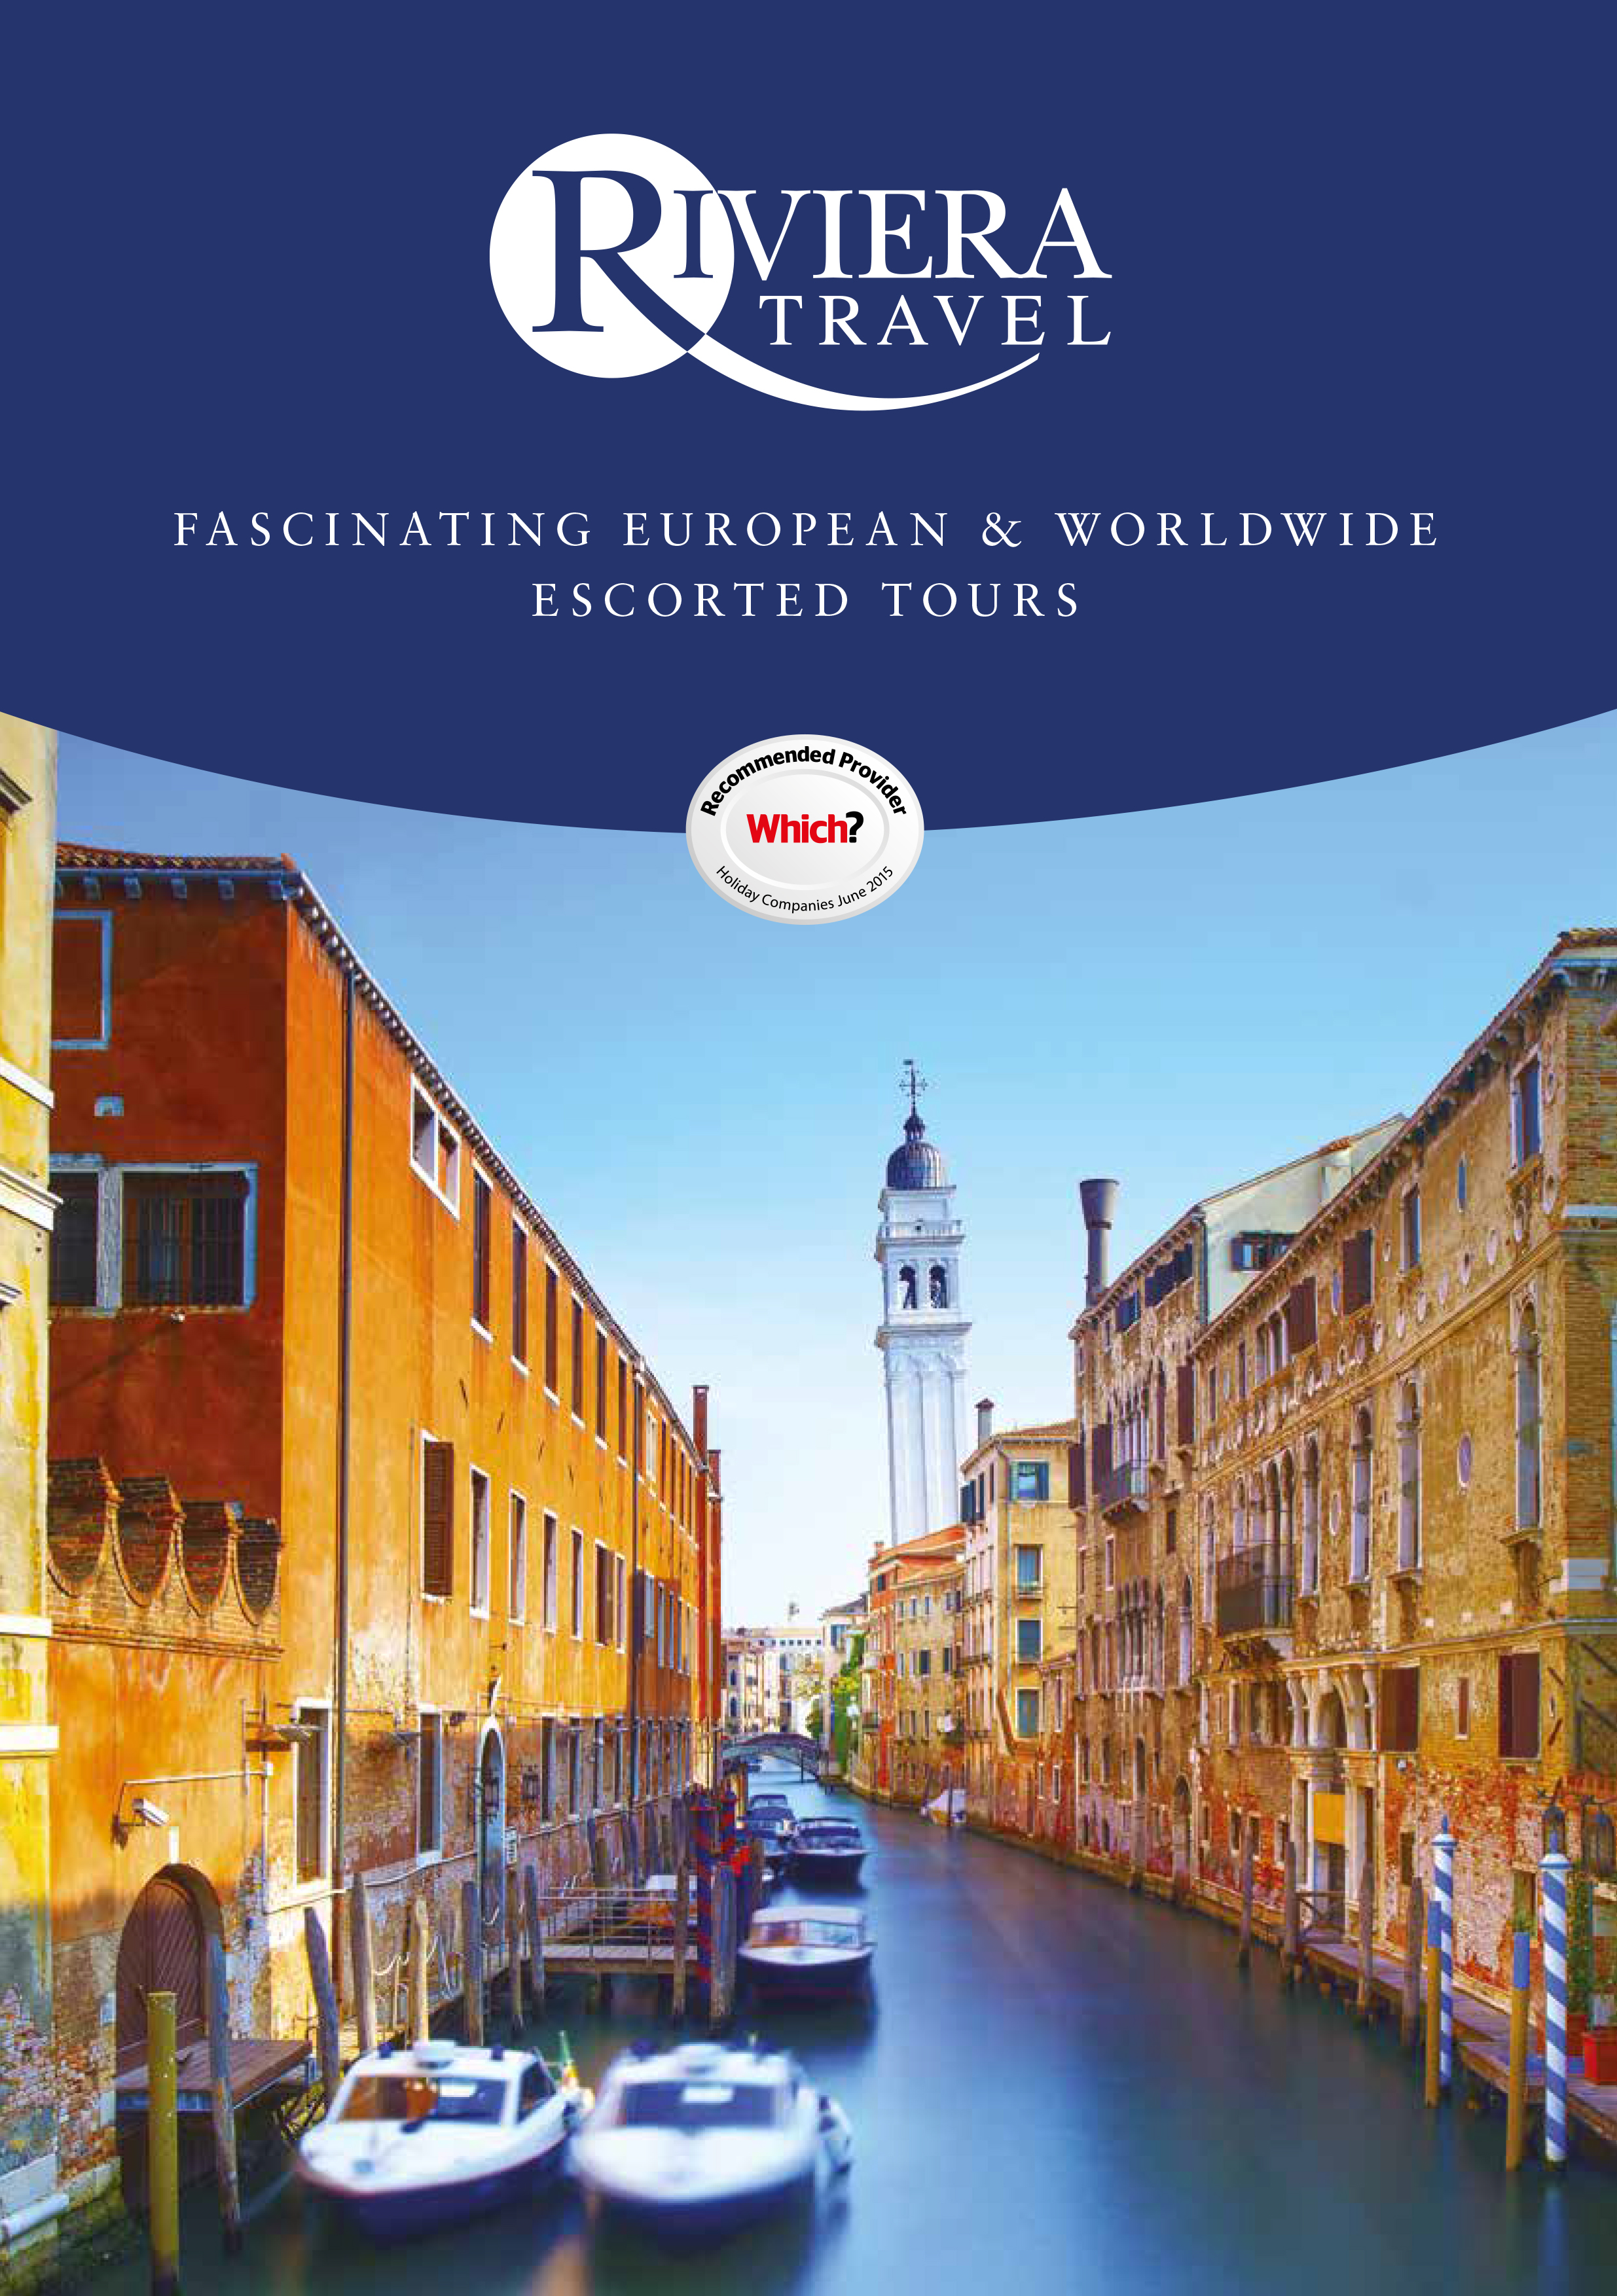 To order brochures from our partner Newmarket Holidays please click here or  call 0330 160 7842 and quote RTX